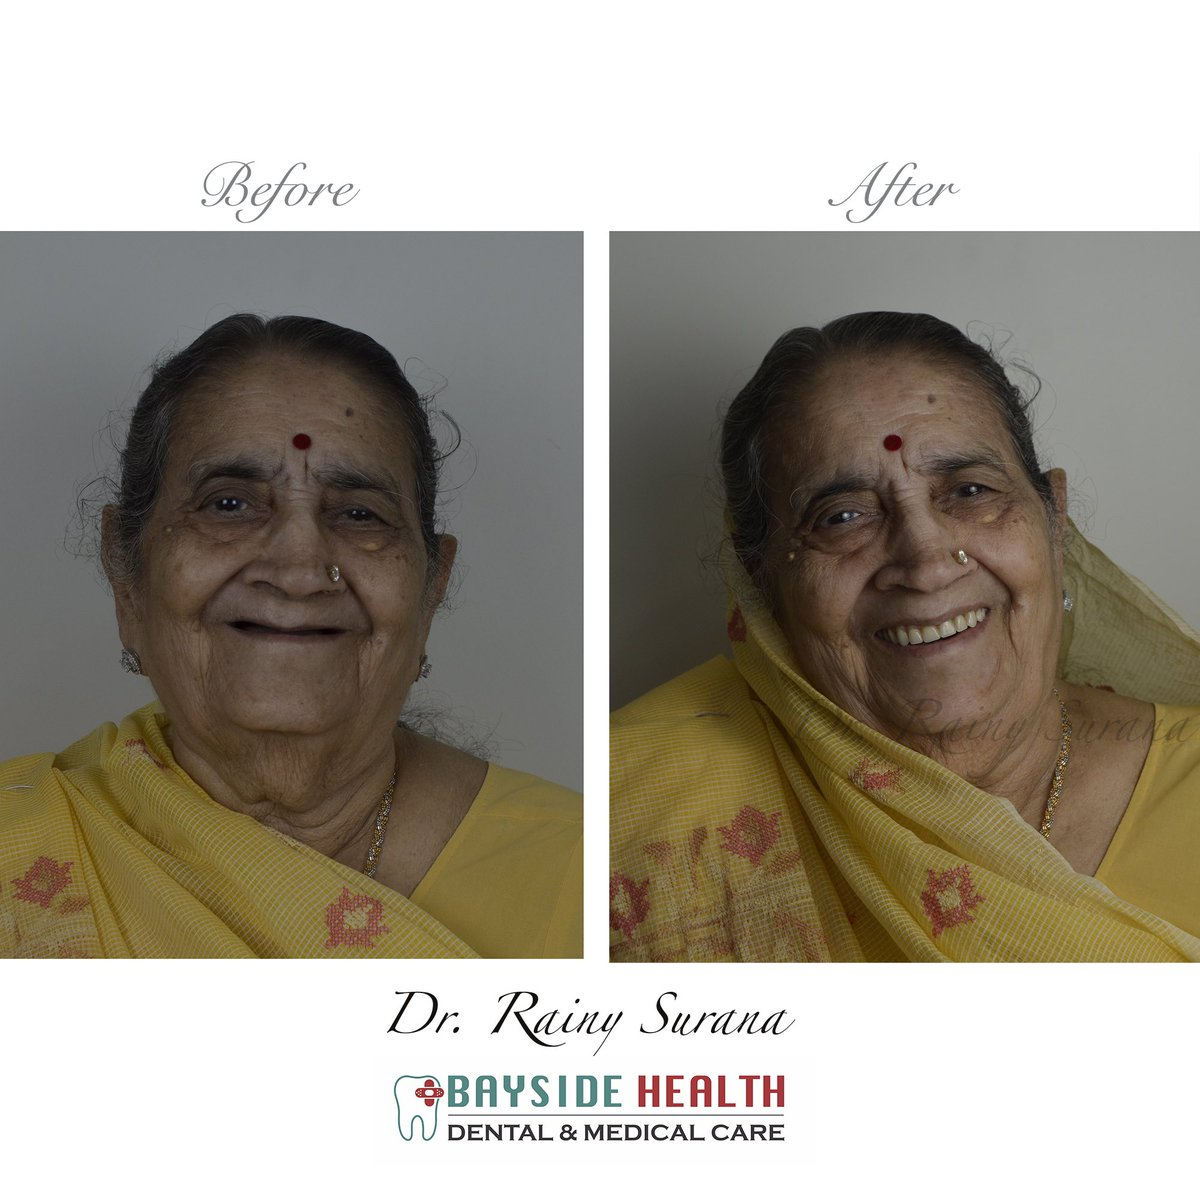 Our beautiful patient before and after! Her smile lit up our clinic, and it was such an honour to be able to achieve the desired function and esthetics! :)                                          #beauty #bestpatient #smile #gorgeous #clinic #beforeafter #southmumbai #loveteeth